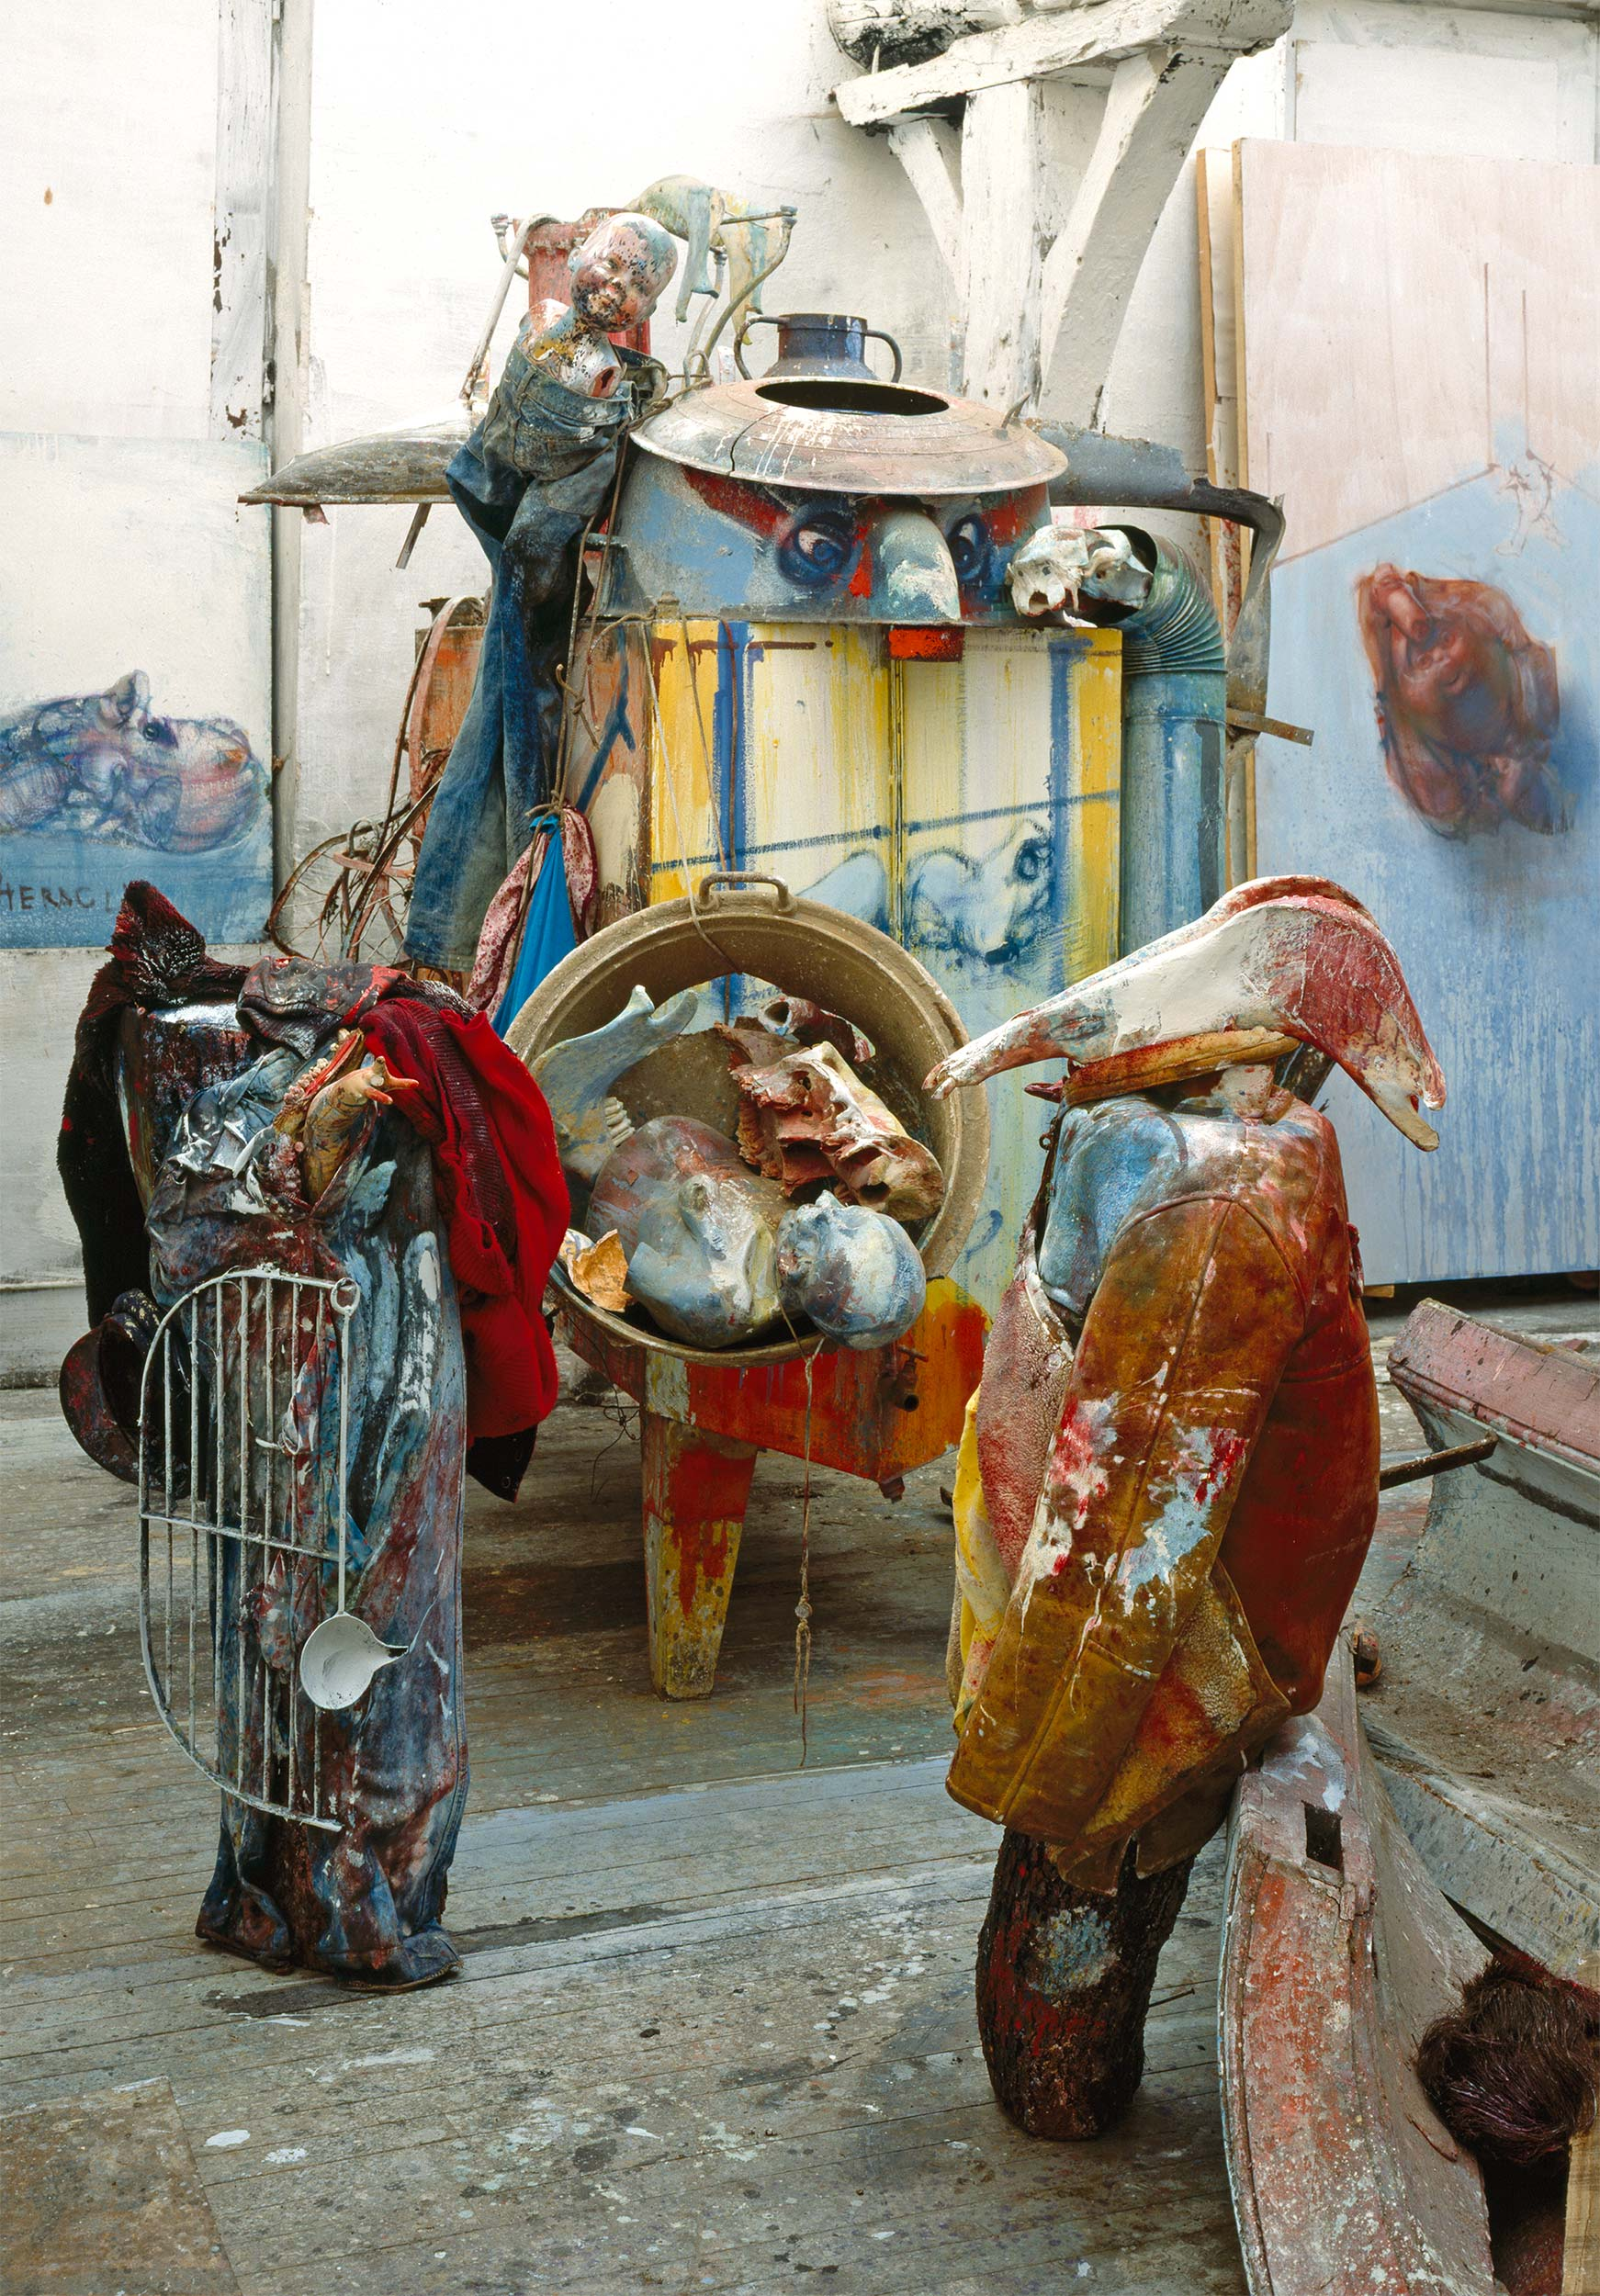 Sculpture in the studio at Hérouval in 1990